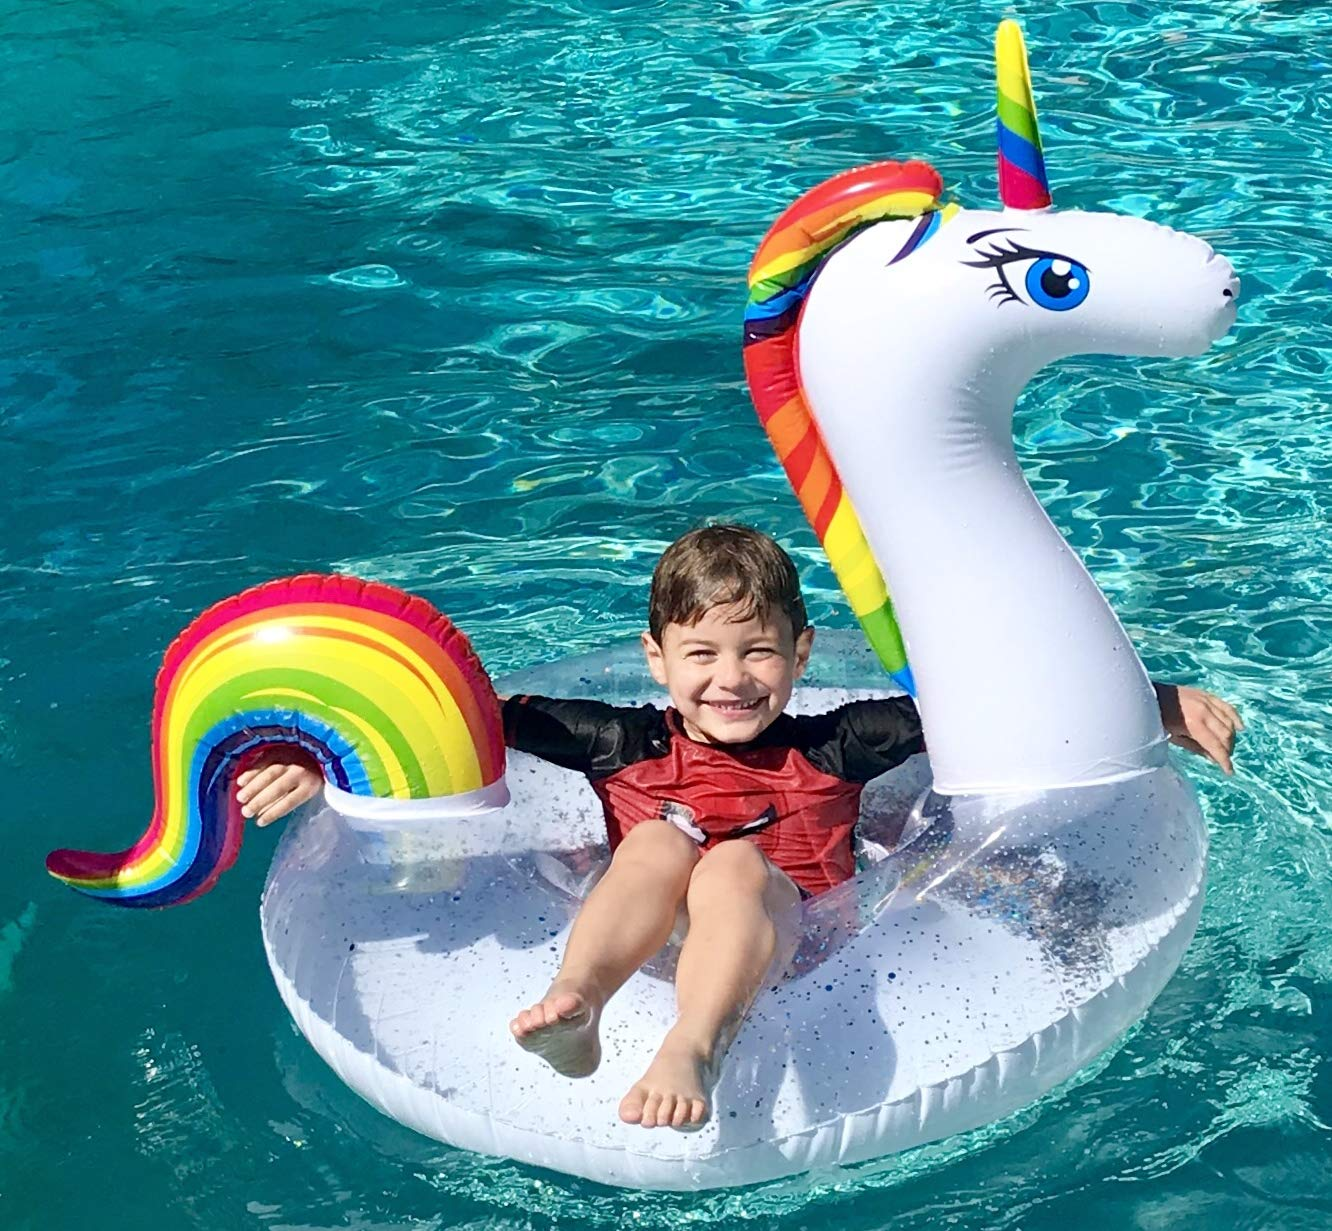 Unicorn Pool Floats for Kids - Glitter Filled - Ride ON Inflatable Unicorn Float for Pool Lake River RAFT - Giant… 9